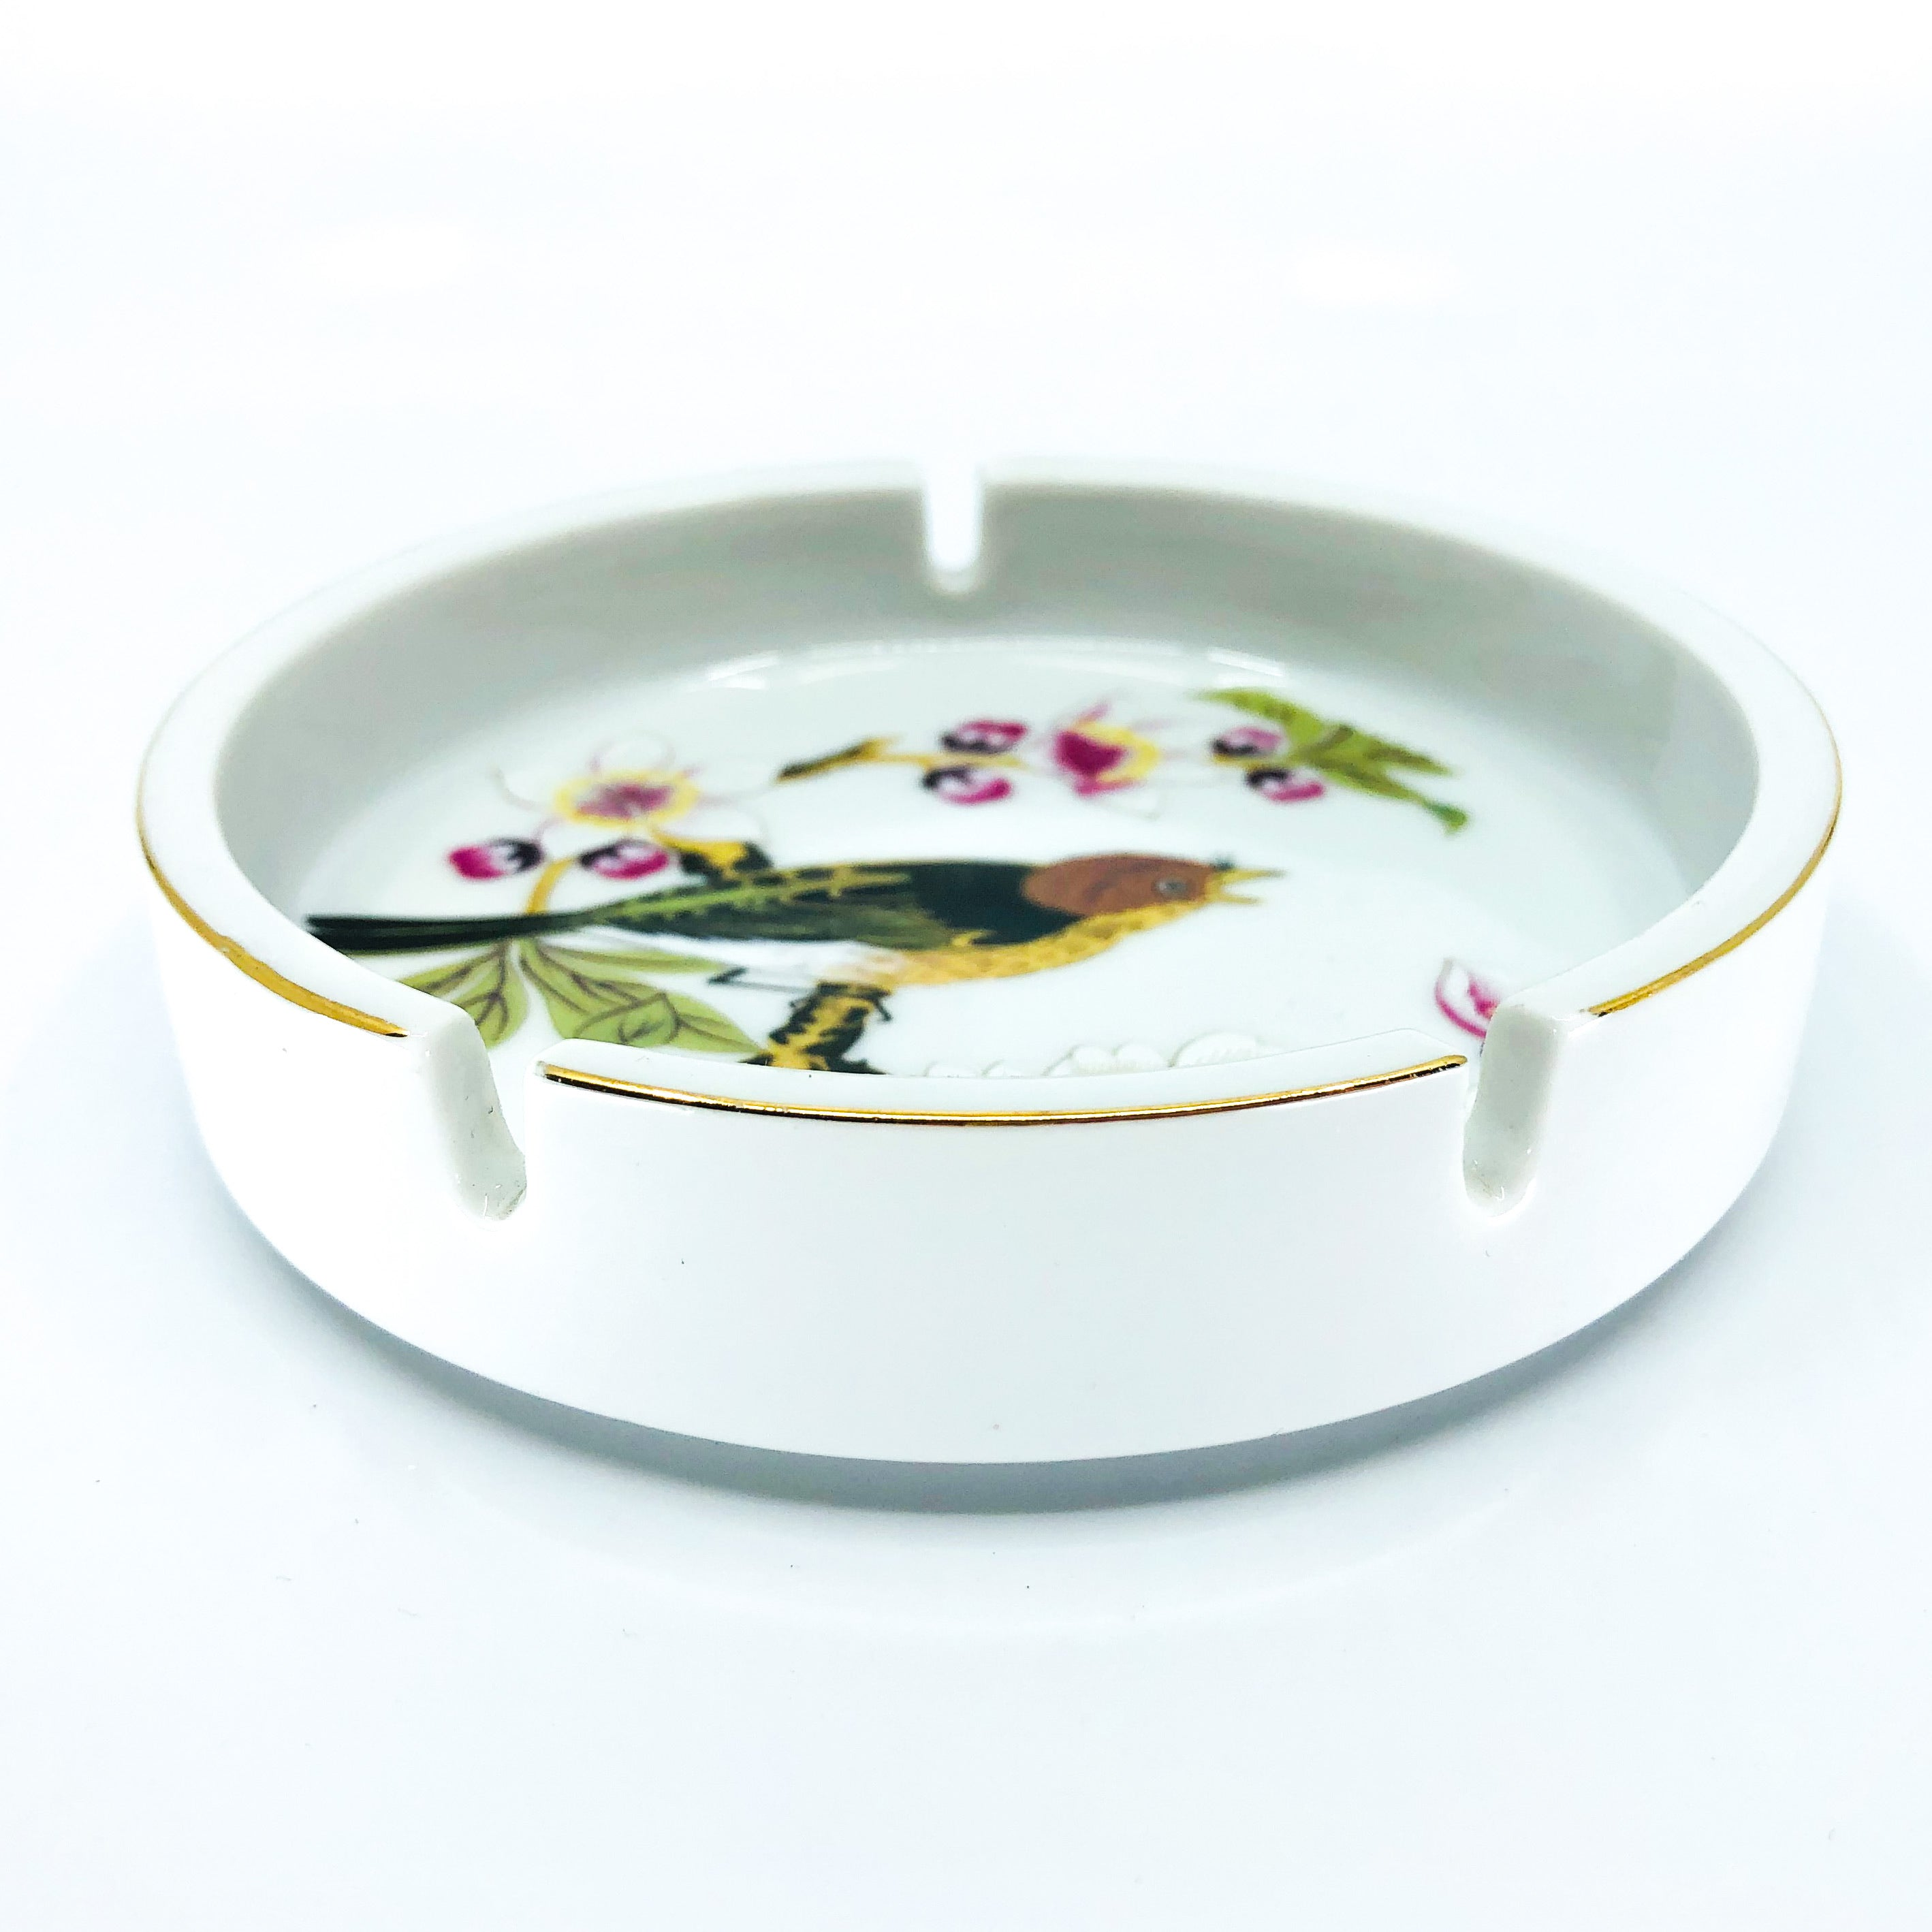 Vintage Chinese Garden Ashtray by Shafford